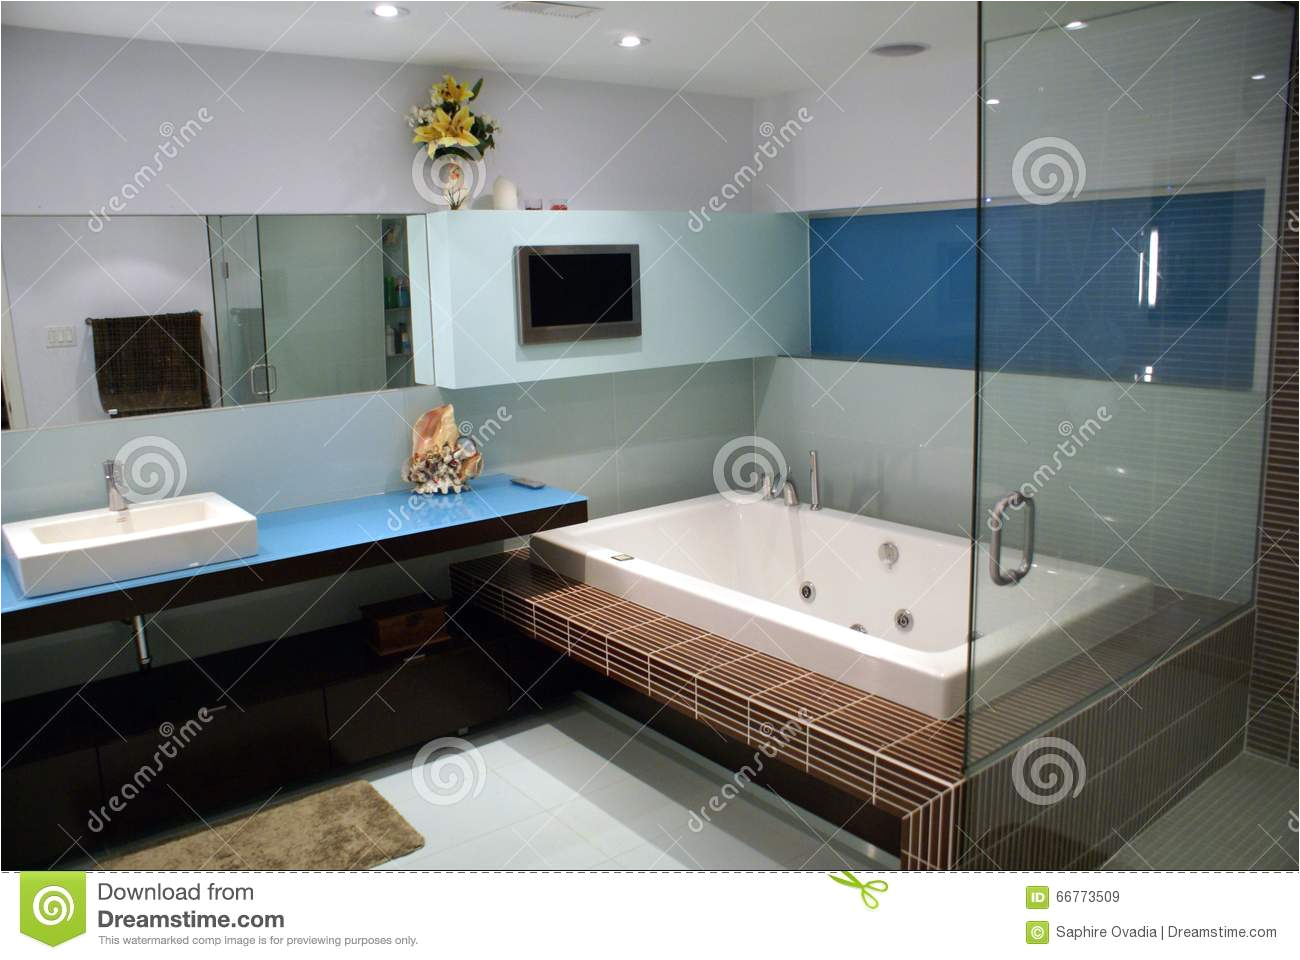 stock photo jacuzzi hot tub bath spa large small pool full heated water used hydrotherapy relaxation pleasure some have image